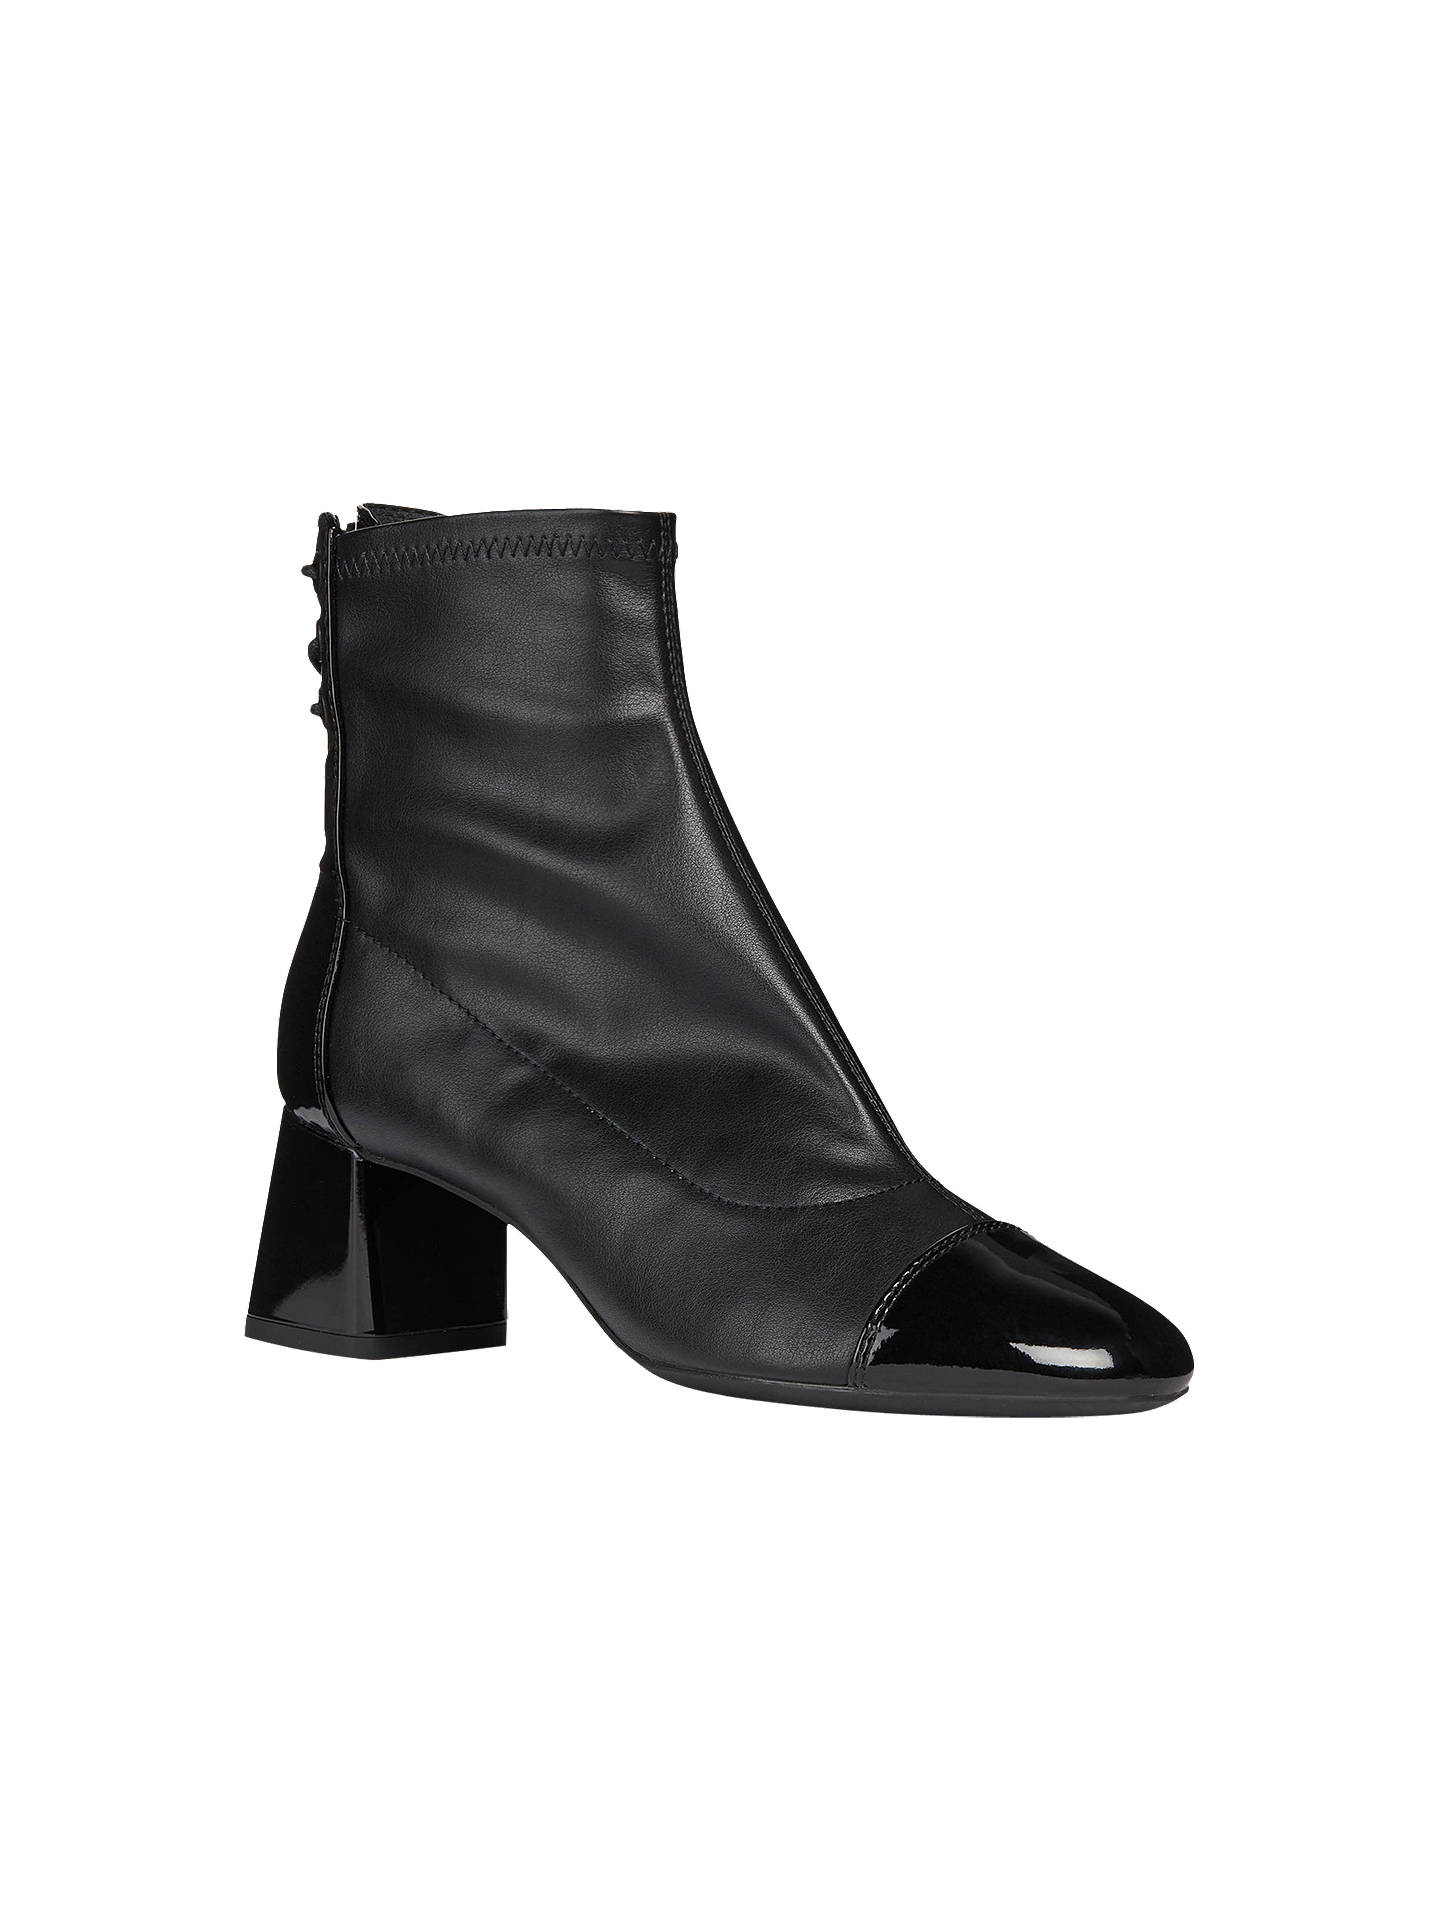 d4461746f6 ... Buy Geox Women's Block Heel Lace Back Ankle Boots, Black, 6 Online at  johnlewis ...